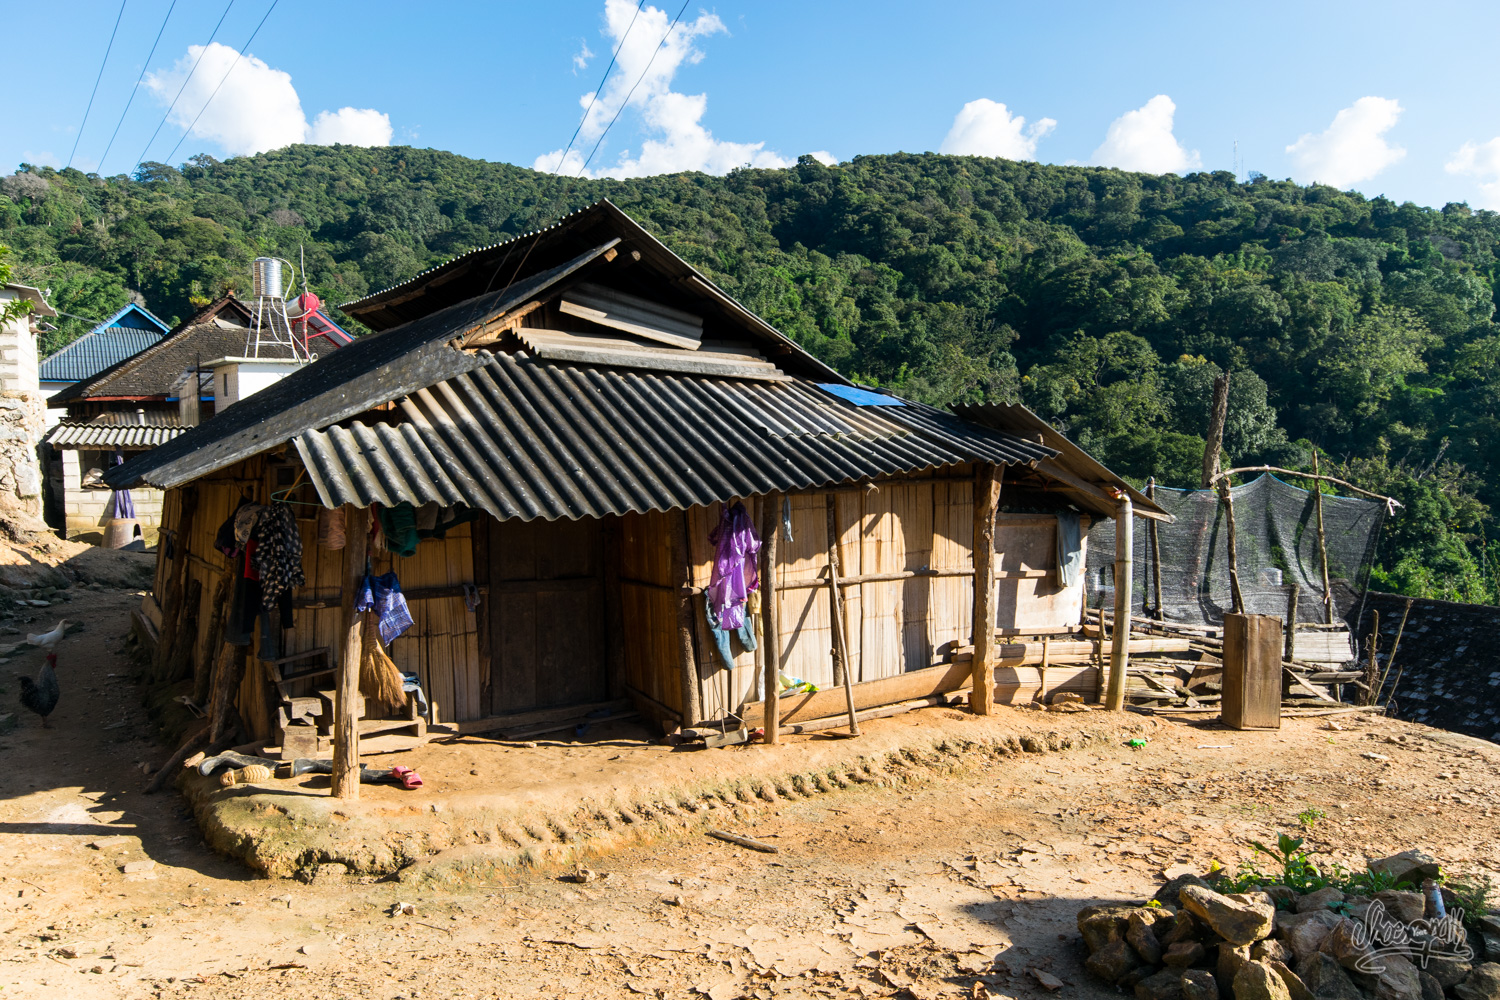 An old bamboo made house in Zhang Lang village in Xishuangbanna